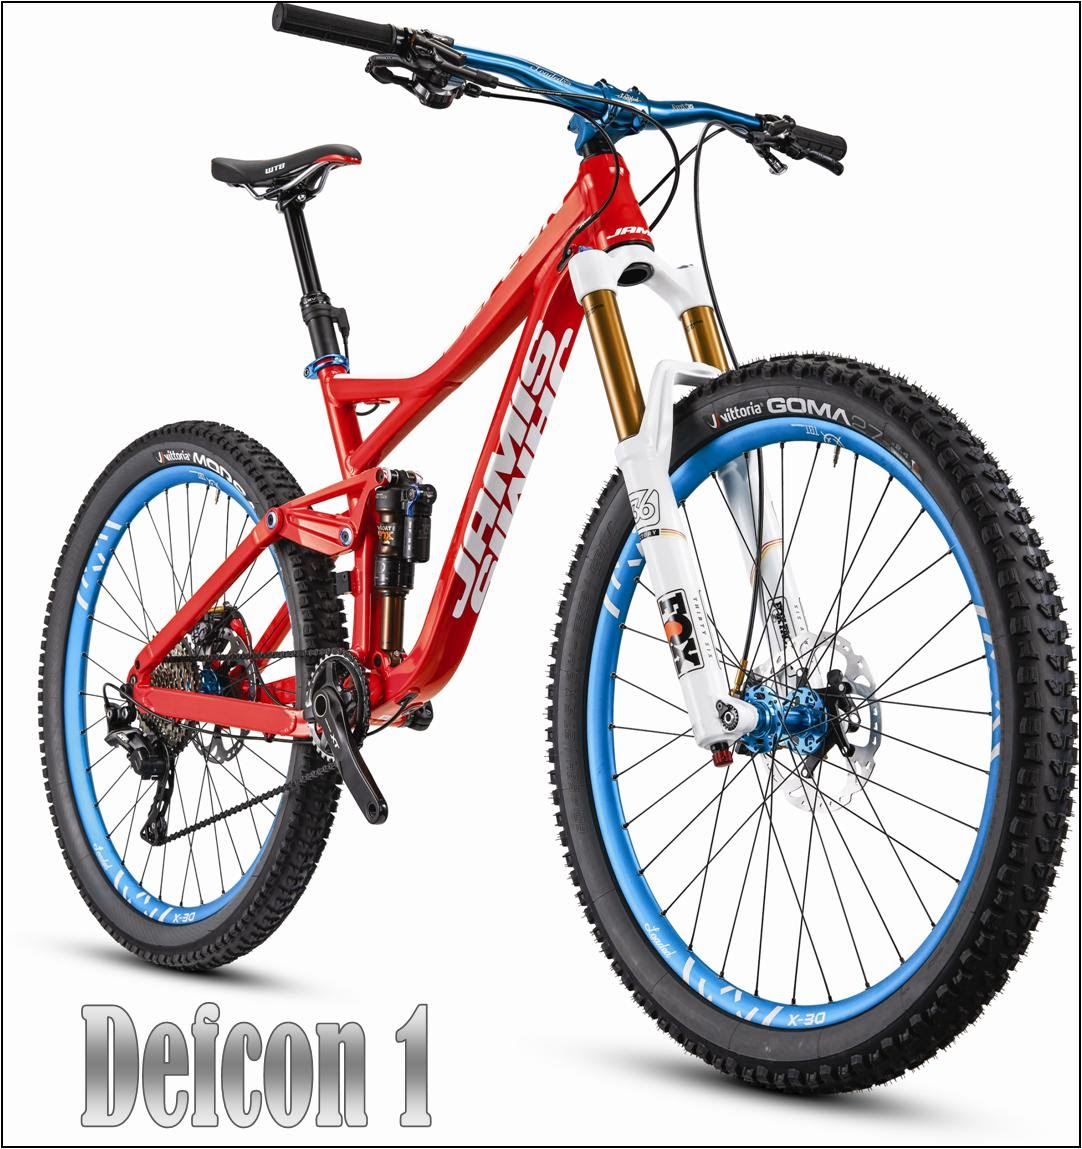 Defcon 1 jamis enduro mountain bike